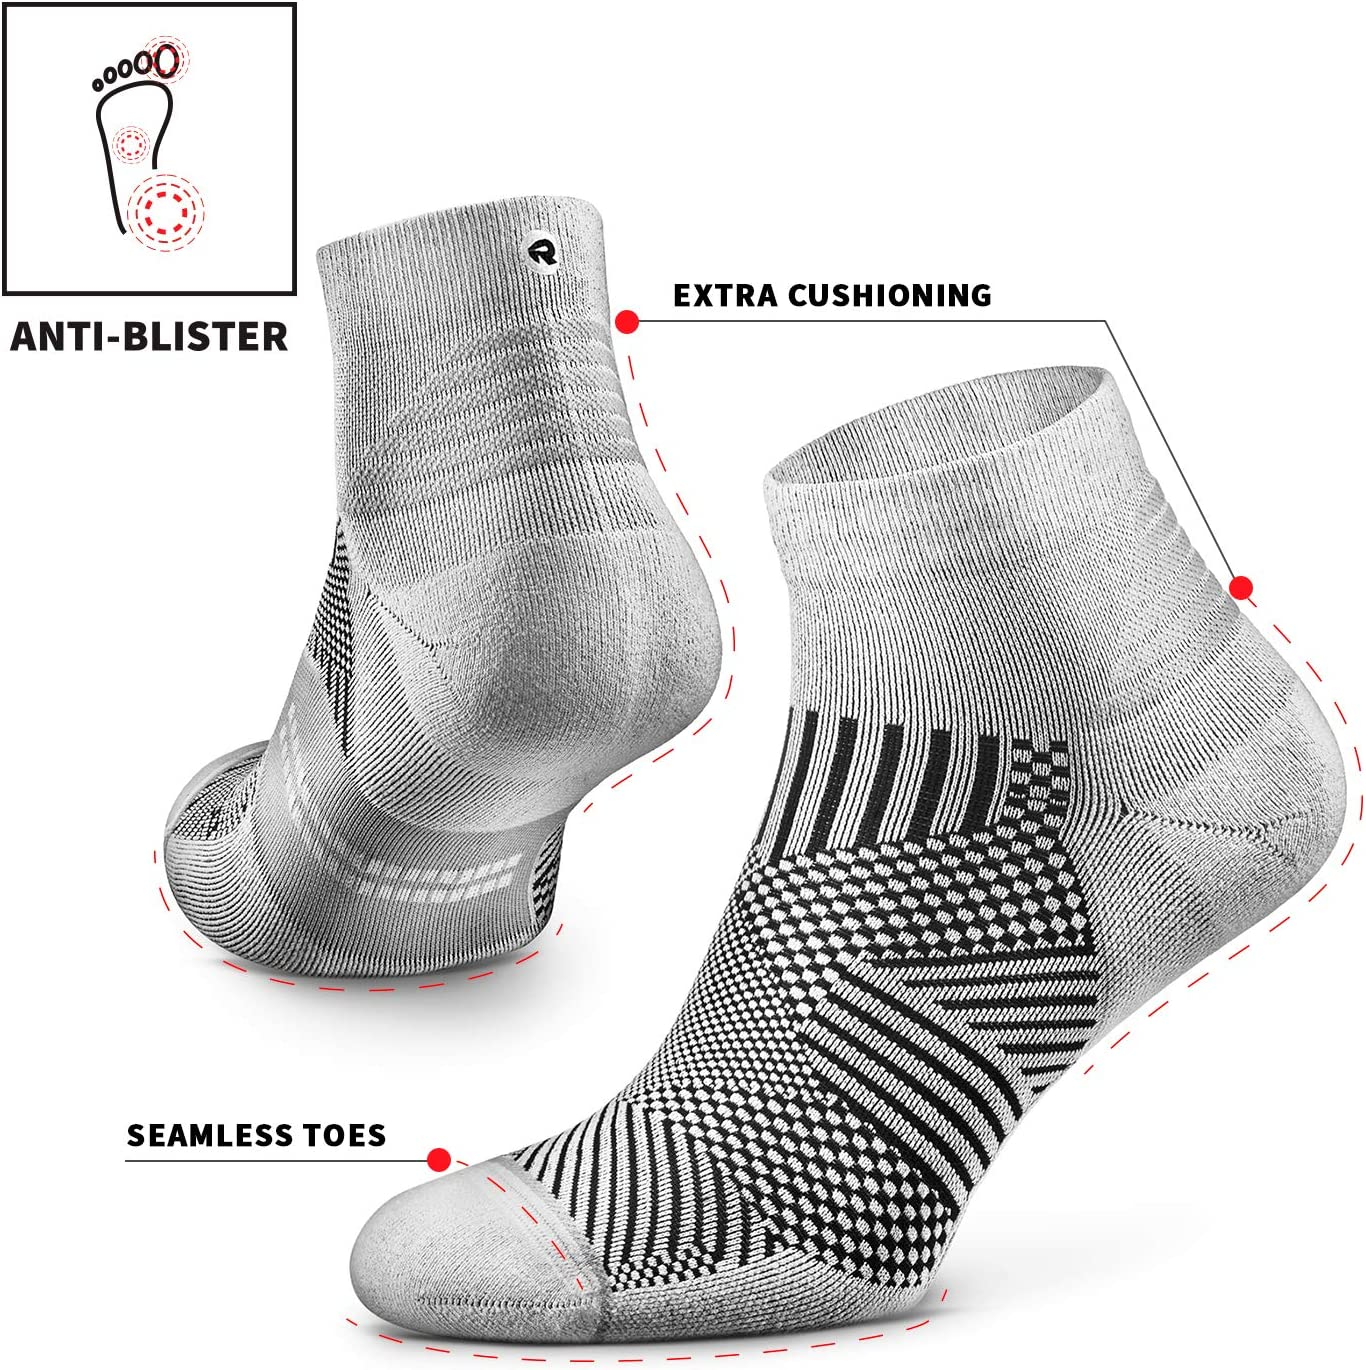 Anti-Odor 1 Pair 100/% Recycled Cushion Rockay Flare Running Socks for Men and Women Quarter Cut Arch Support